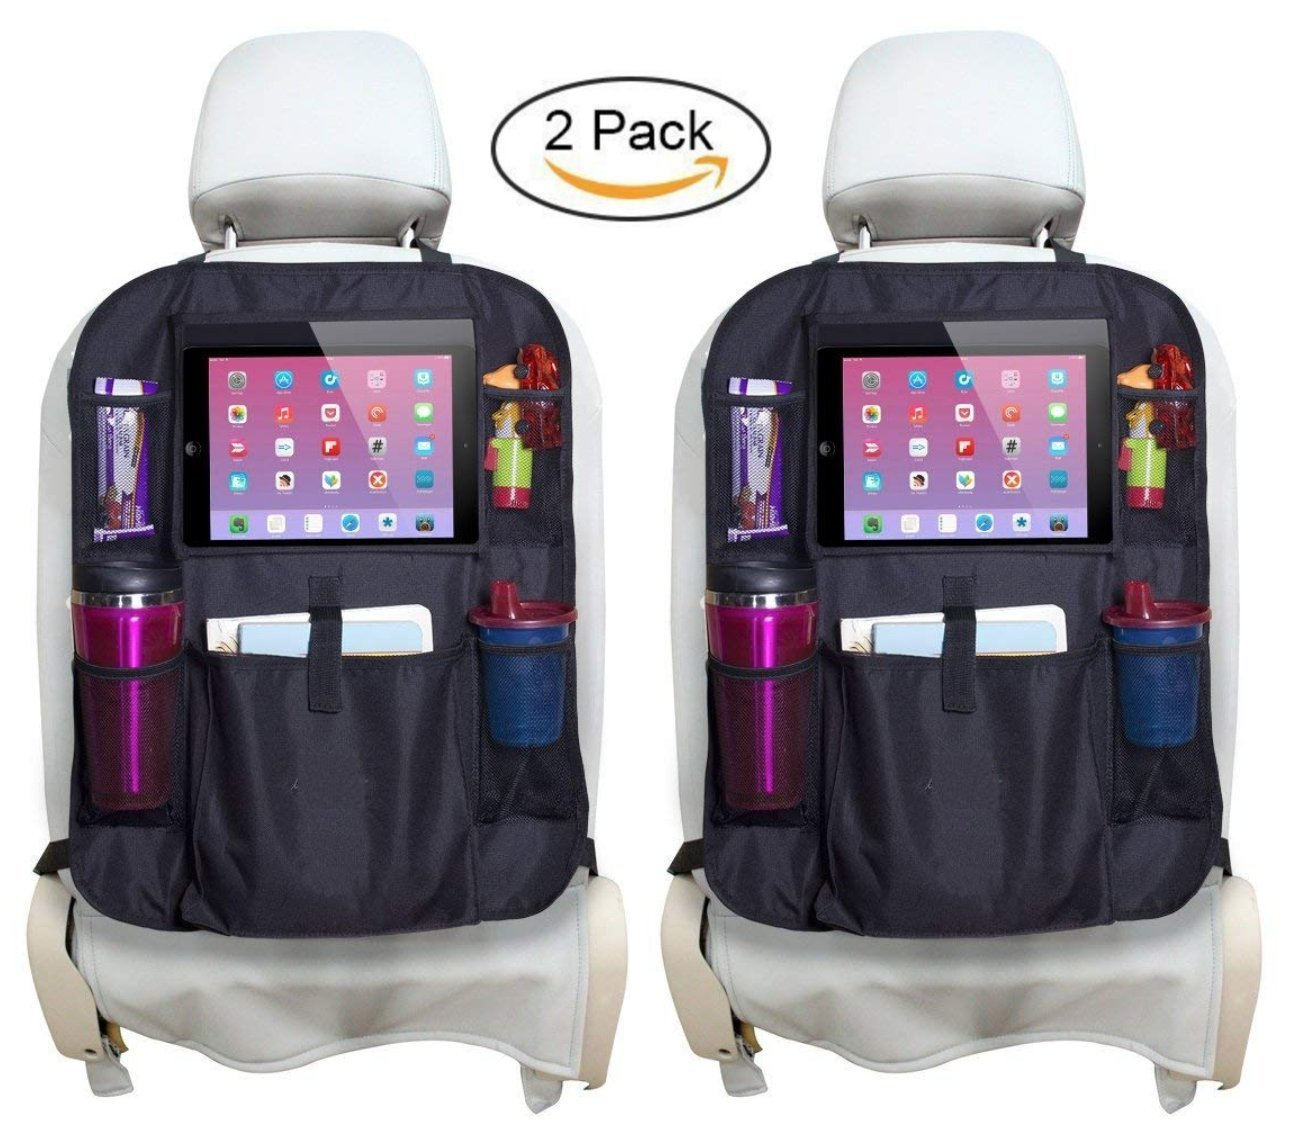 2pcs Car Seat Protector and Kick Mat with Multi-use Pockets for Bottles Essential Universal Fit Travel Accessory. Snacks etc Akeekah Back Seat Car Organiser with 10.1 iPad//Tablet Holder Toys